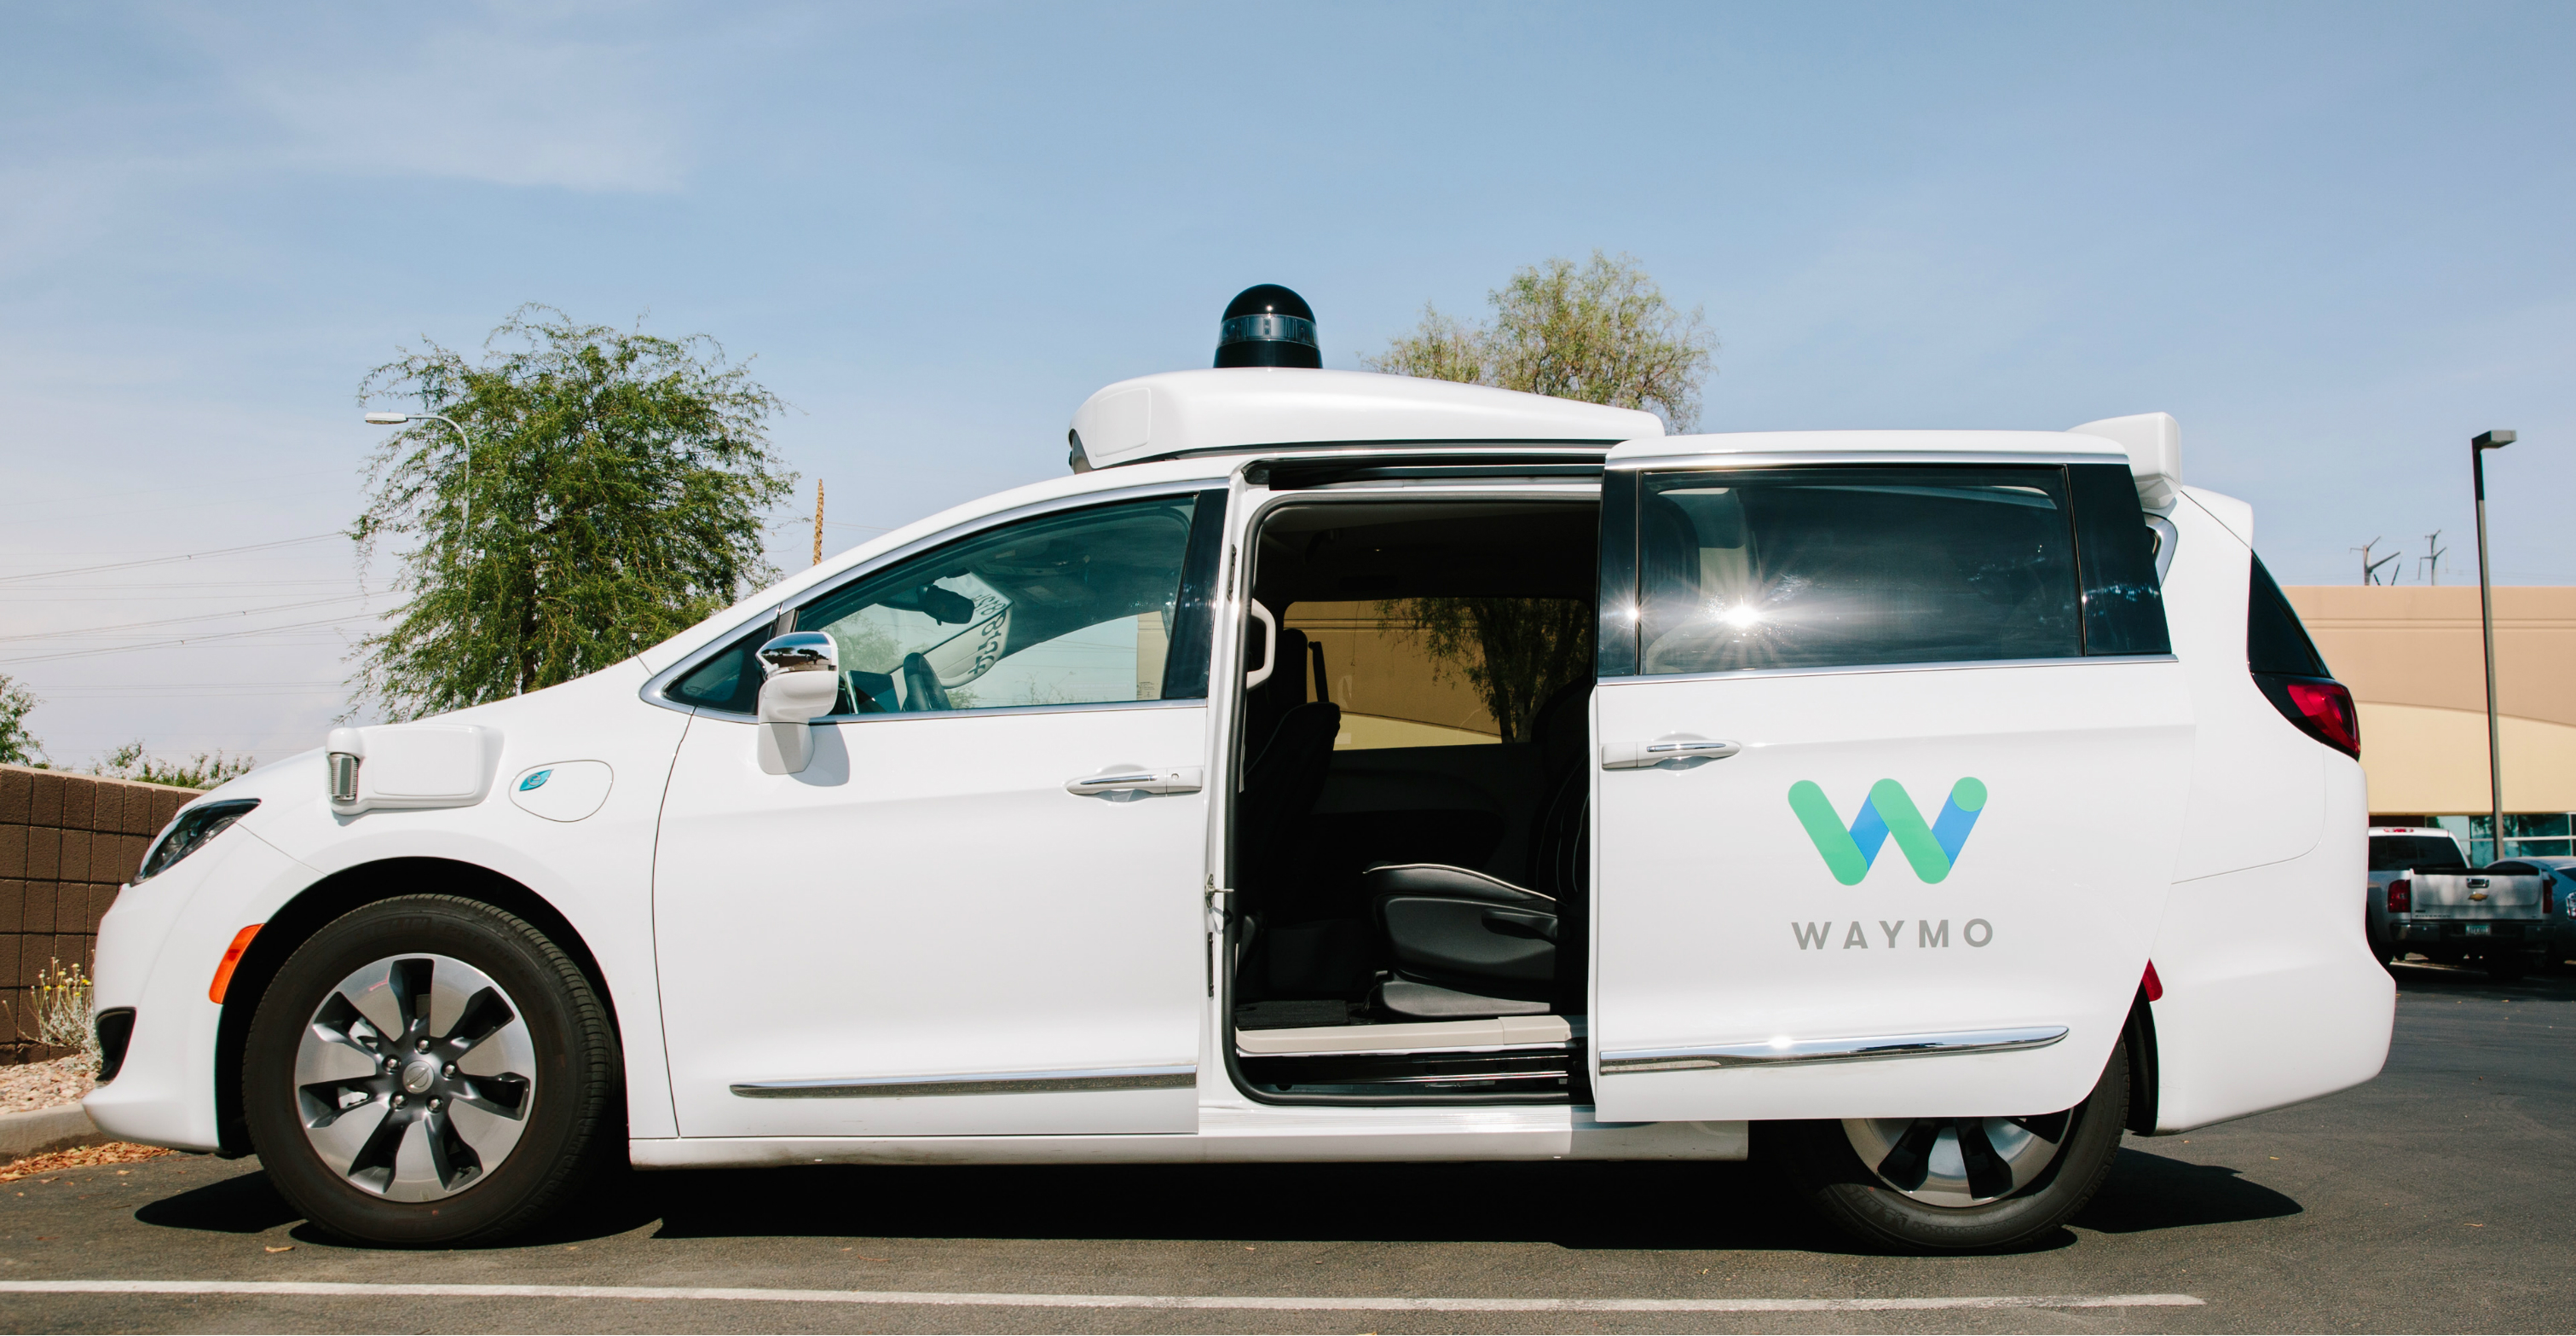 Waymo said the new facility will mass-produce Level 4 autonomous vehicles which can pilot themselves without a human driver under certain conditions. Photo: Bloomberg